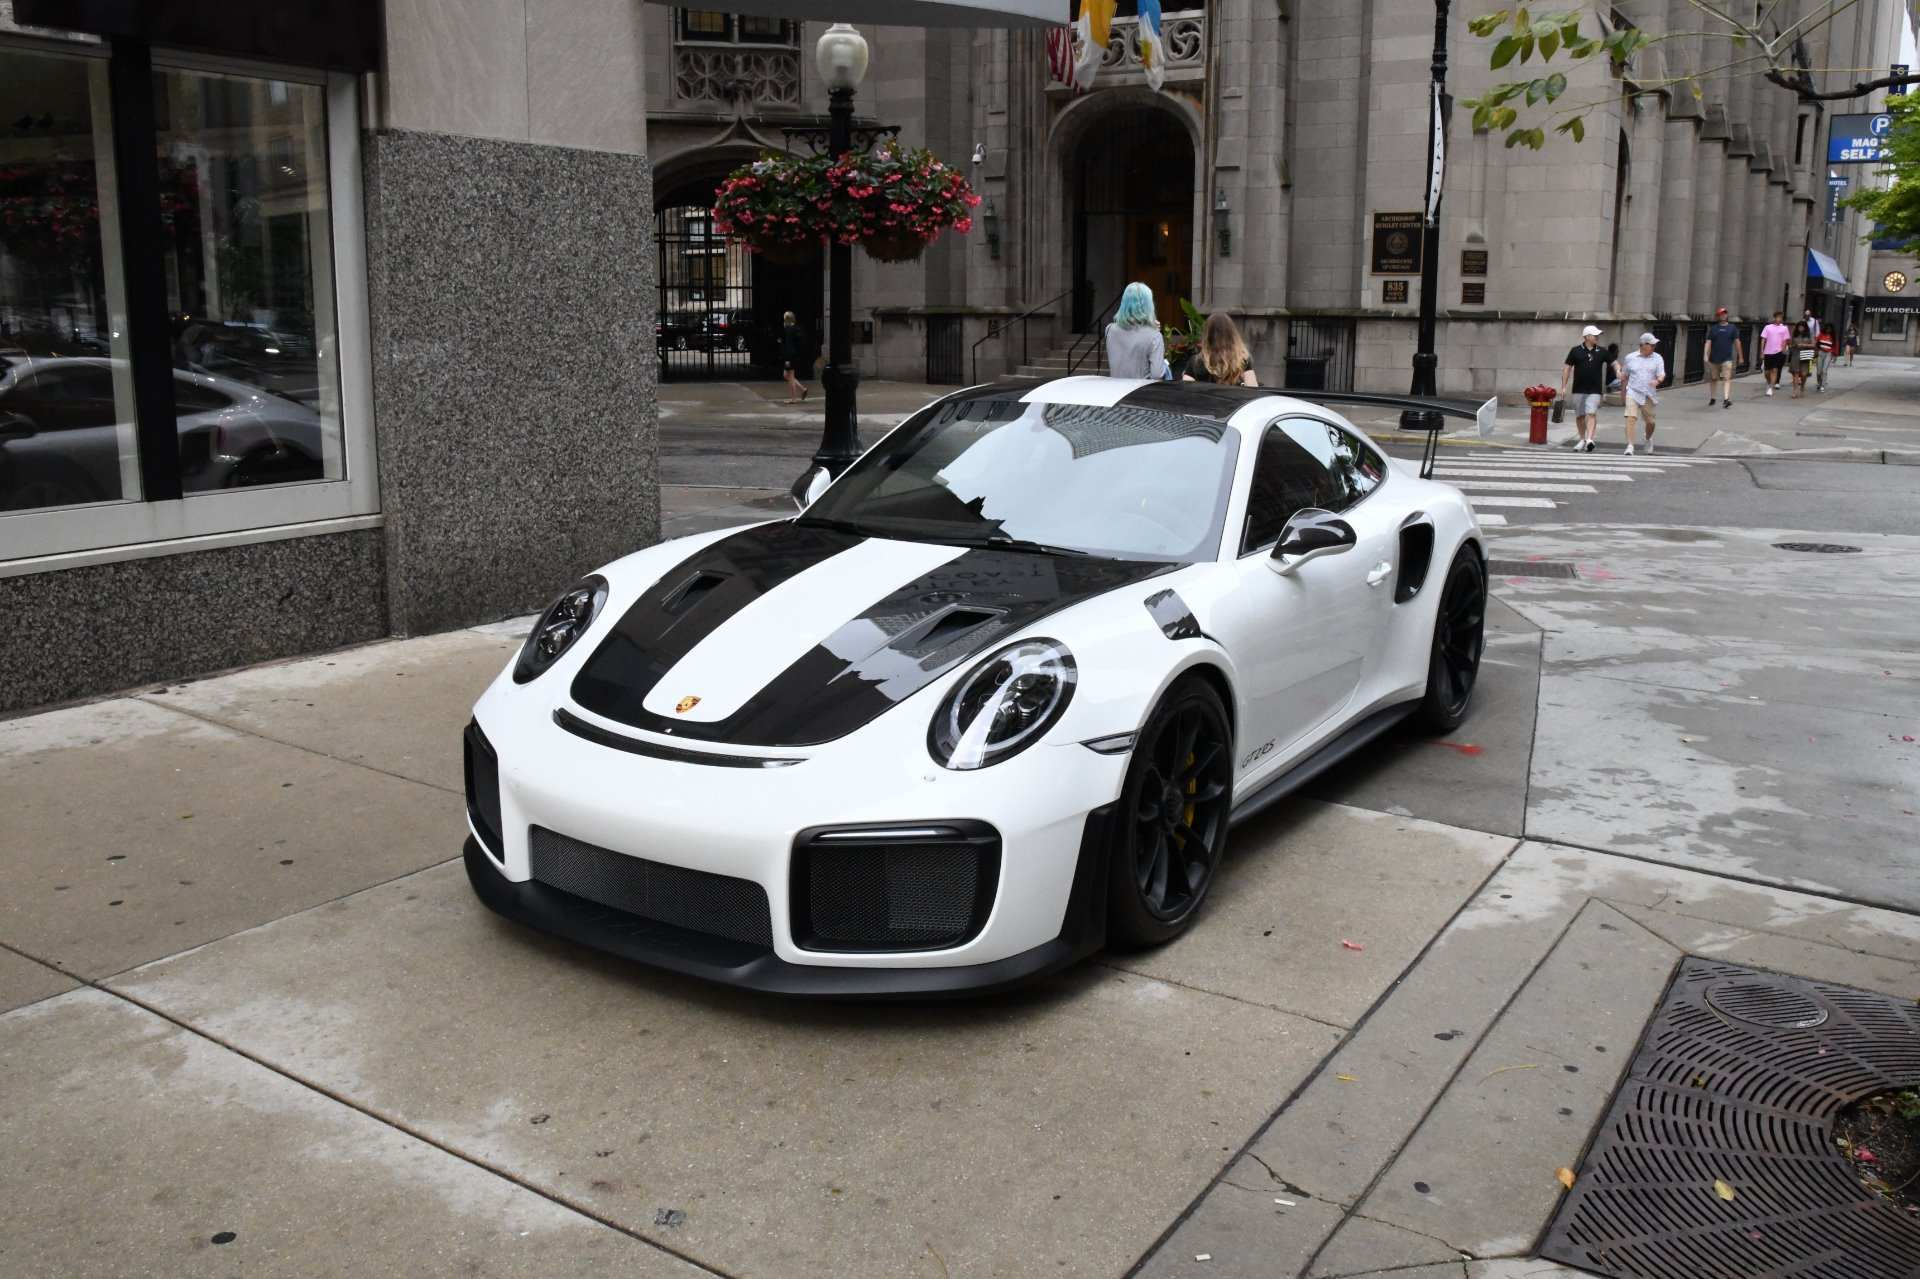 44 A 2019 Porsche Gt2 Rs For Sale Price And Review